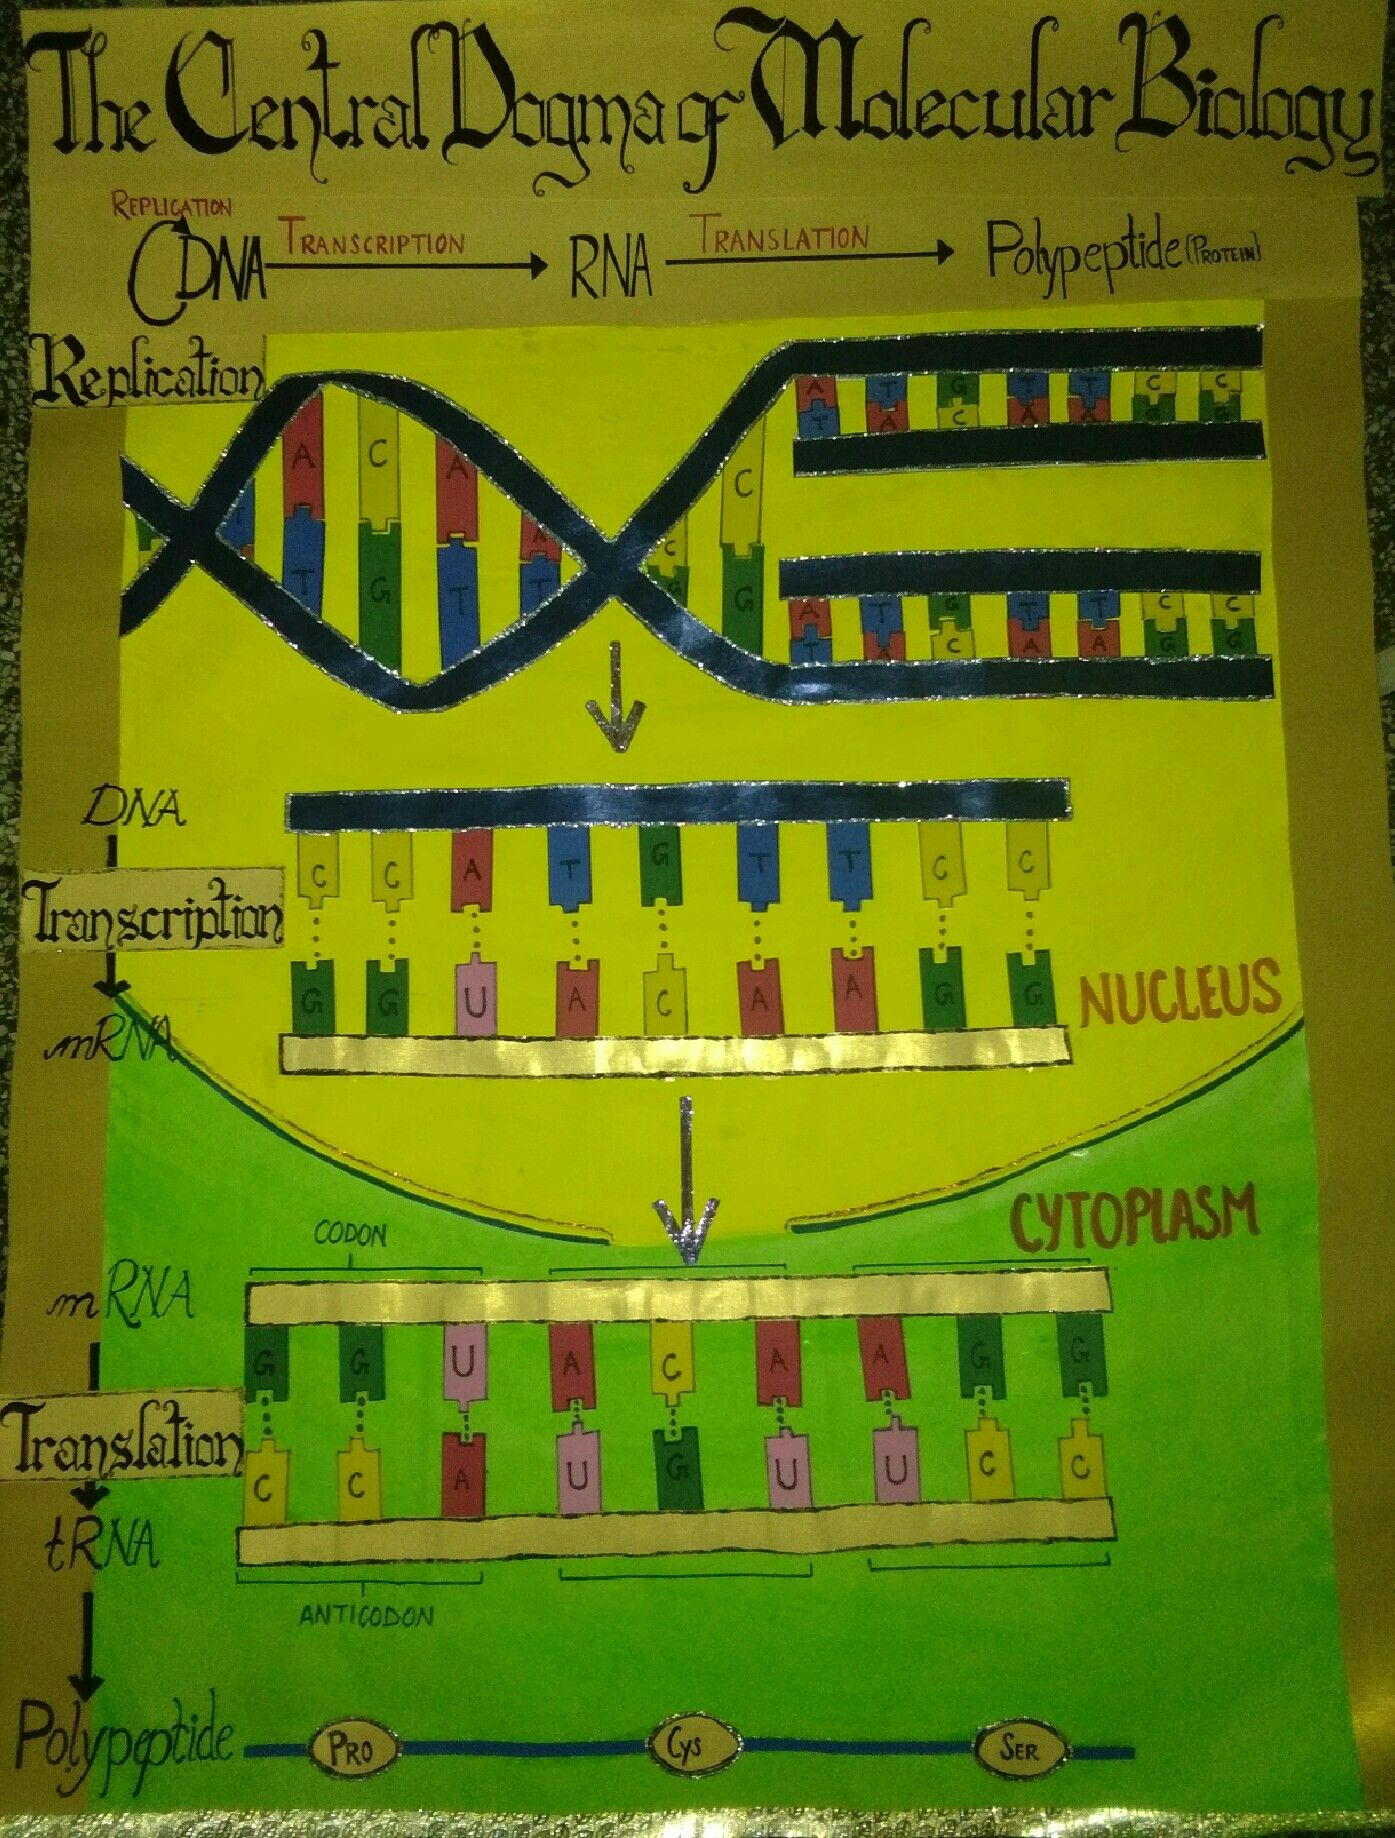 Project On Central Dogma Of Molecular Biology Made By Royals K Central Dogma Molecular Biology Biology Projects [ 1838 x 1395 Pixel ]